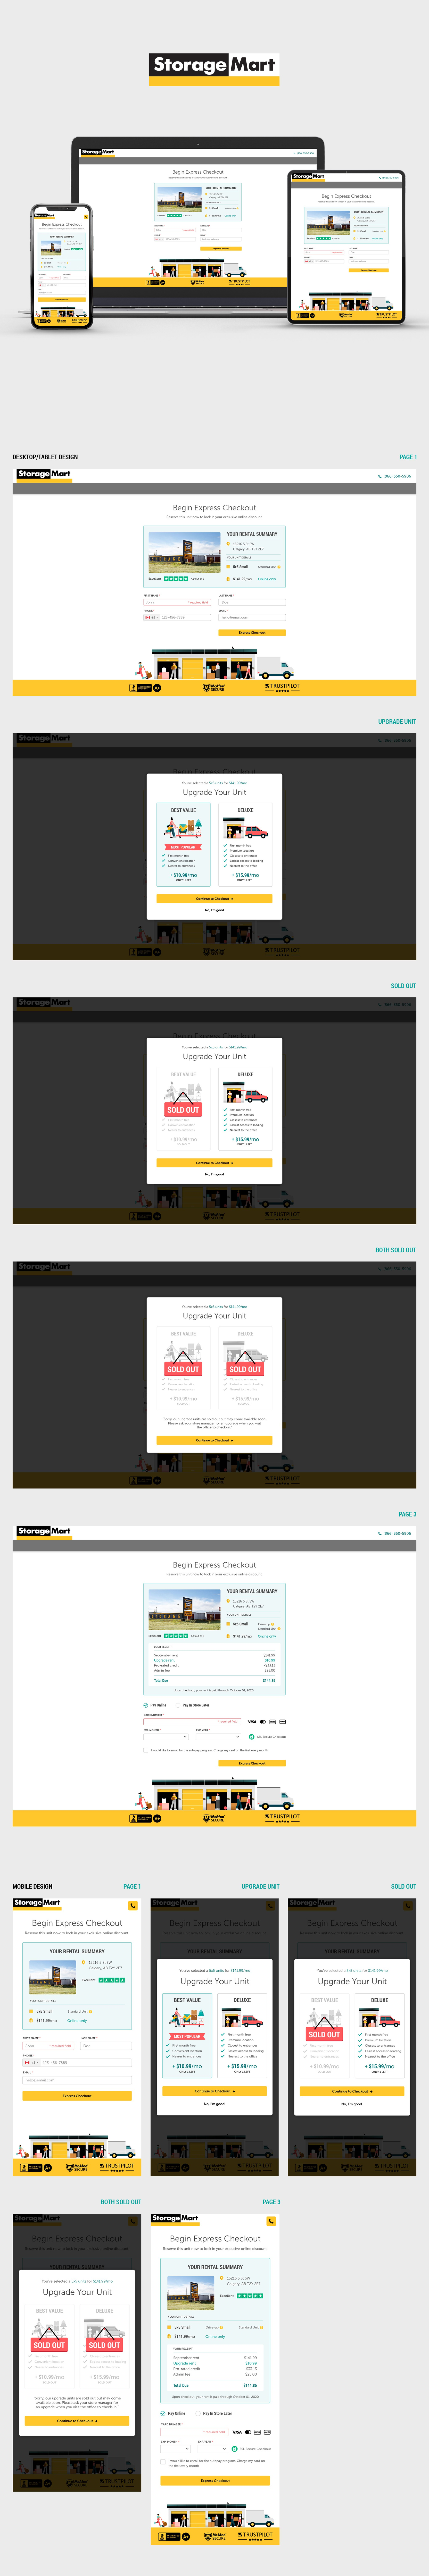 Upsell PopUp Page